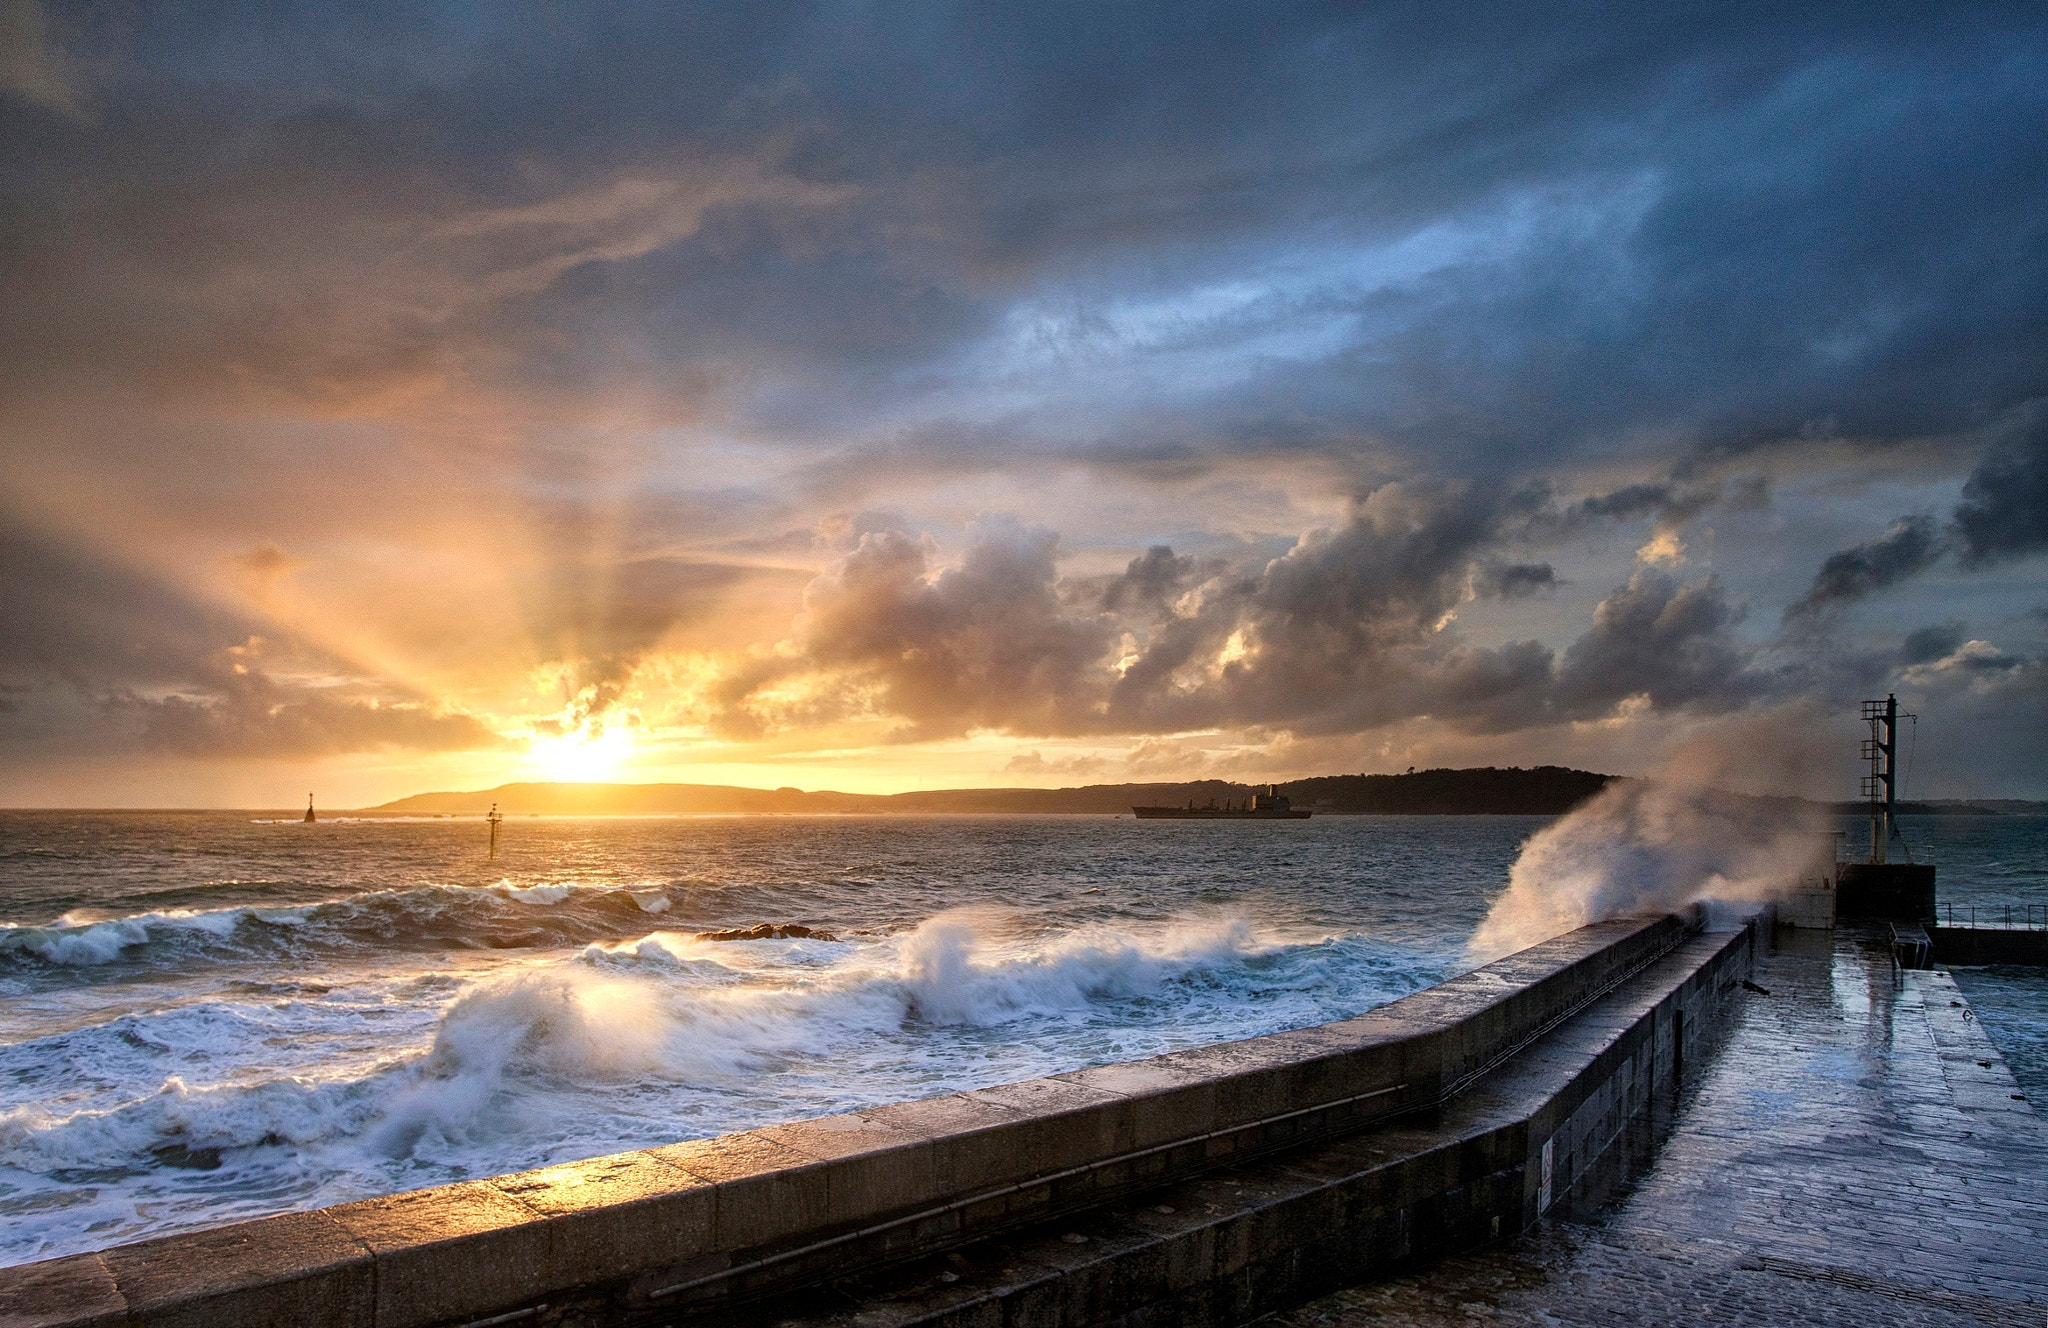 Photograph Stormy Eventide by Chris Marshall on 500px